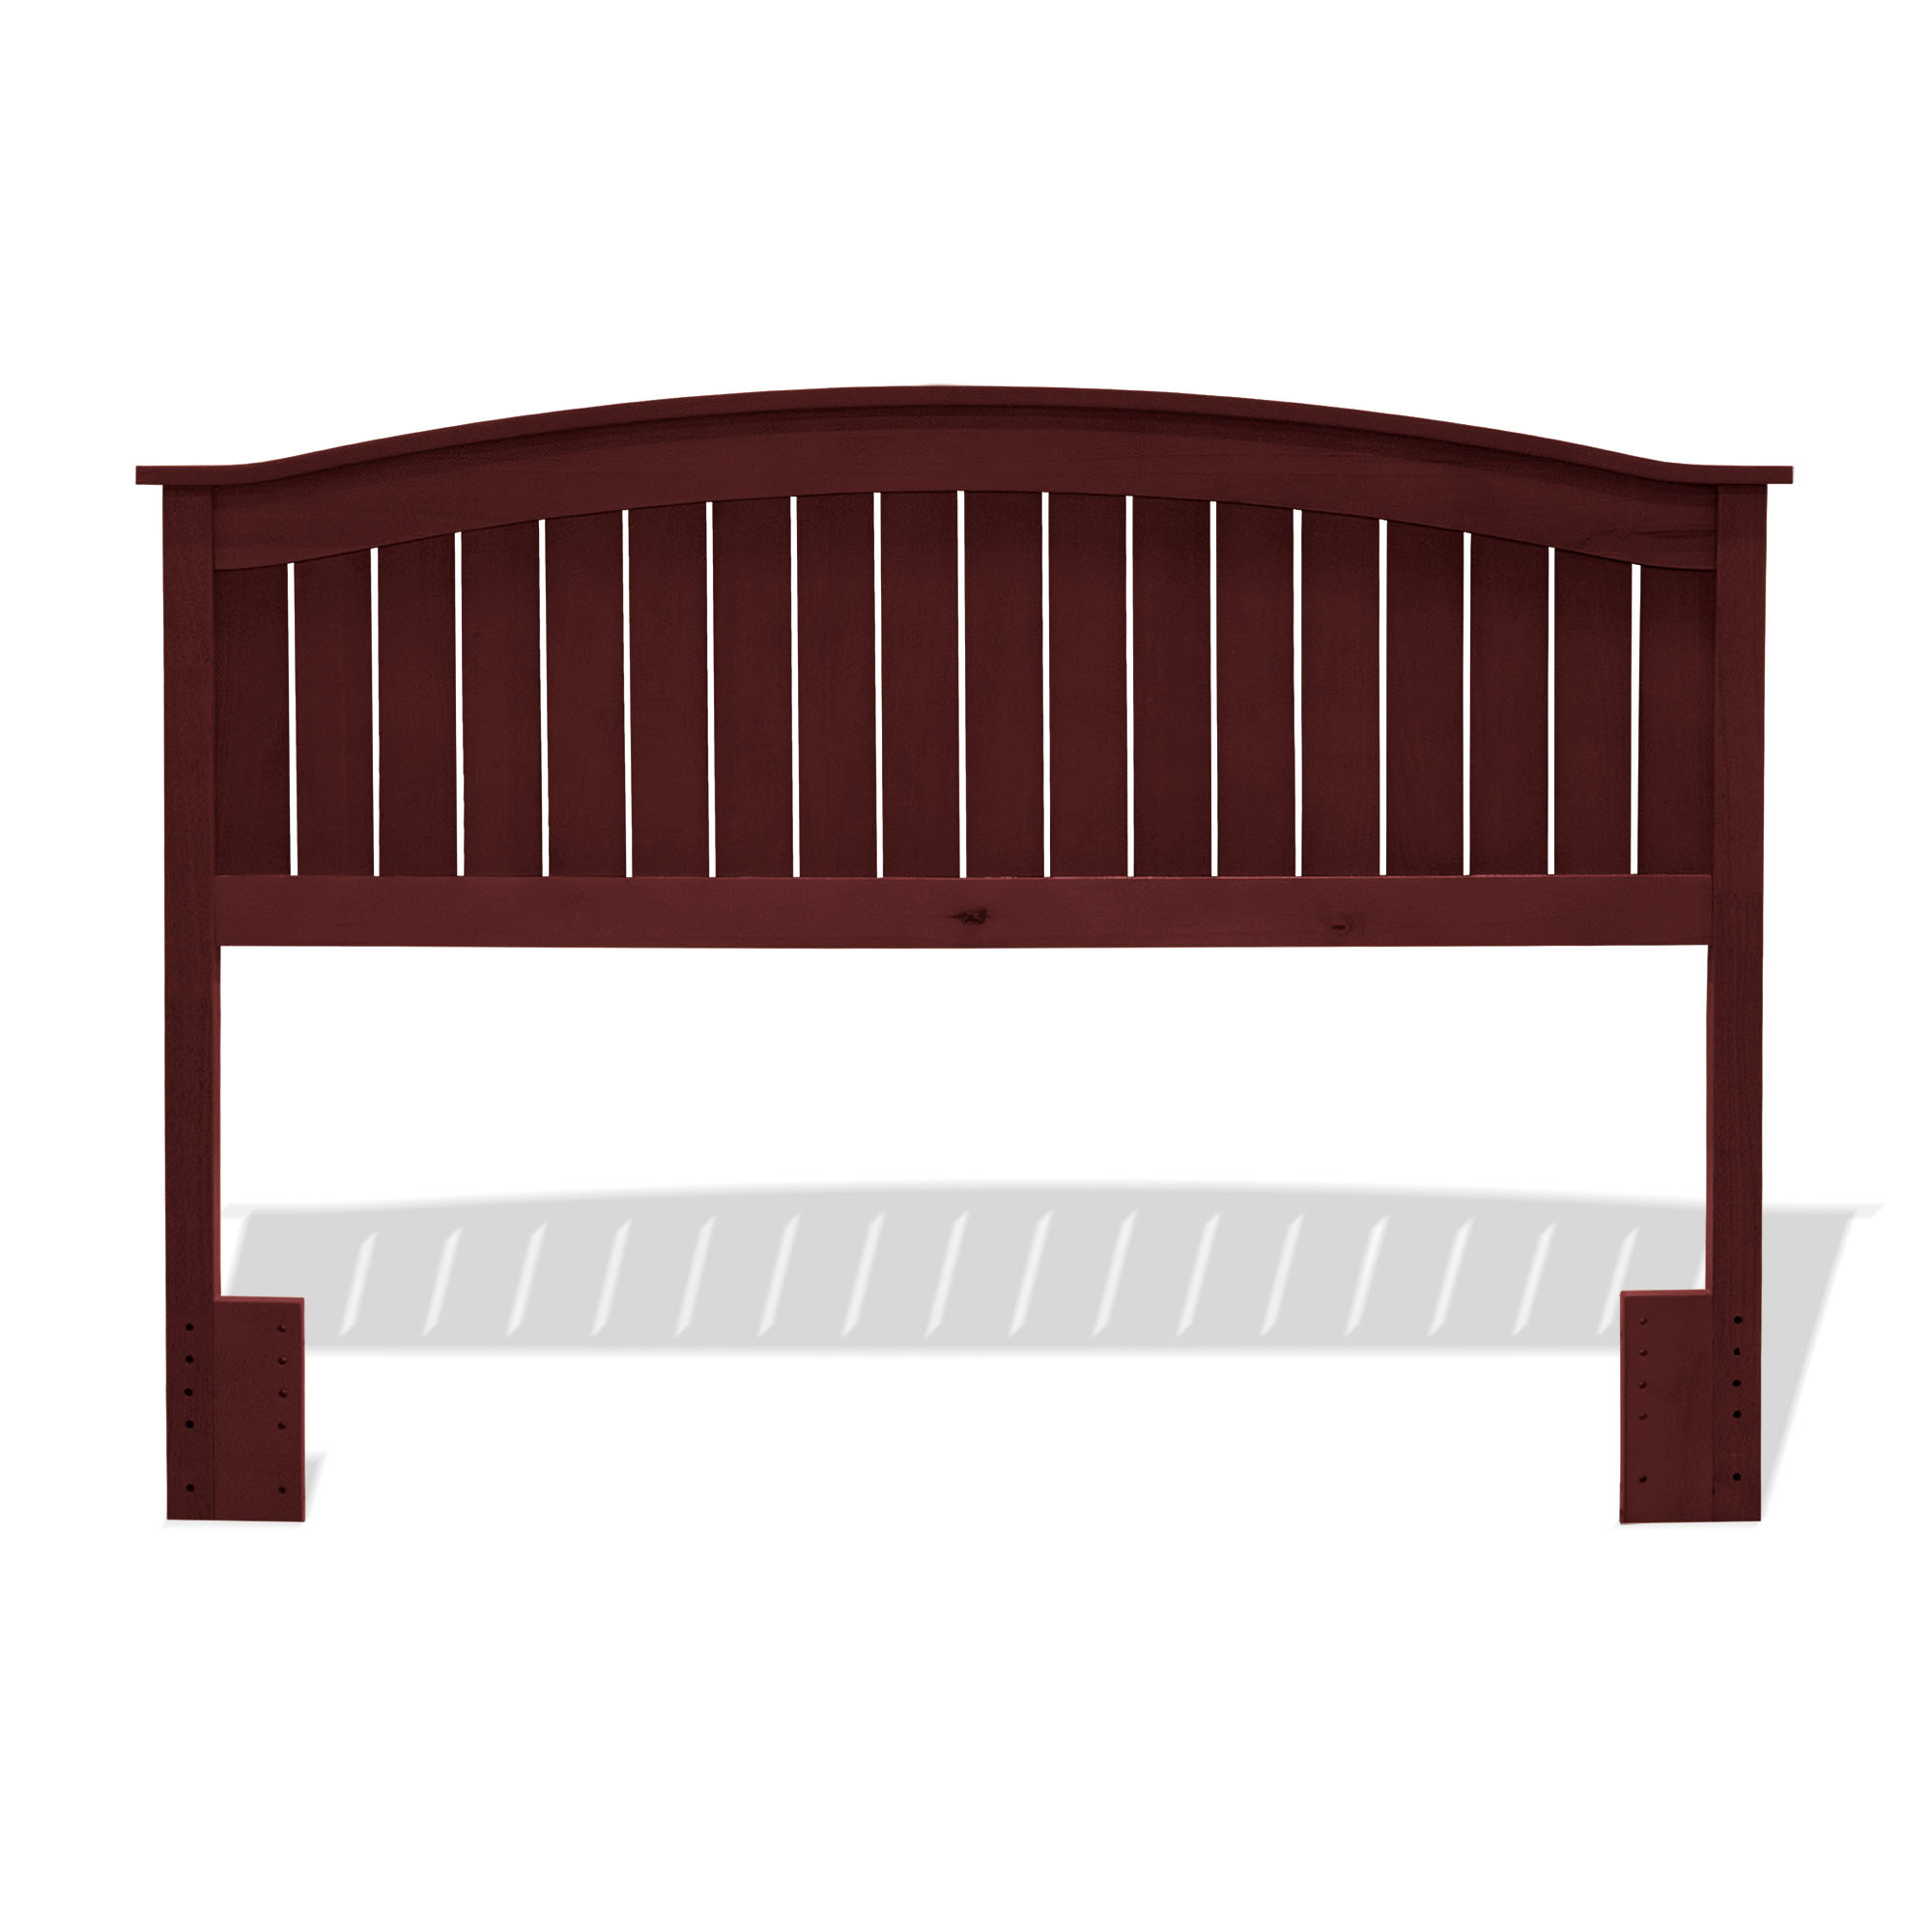 Fashion Bed Group by Leggett & Platt Finley Full Queen Headboard, Multiple Finishes by Fashion Bed Group